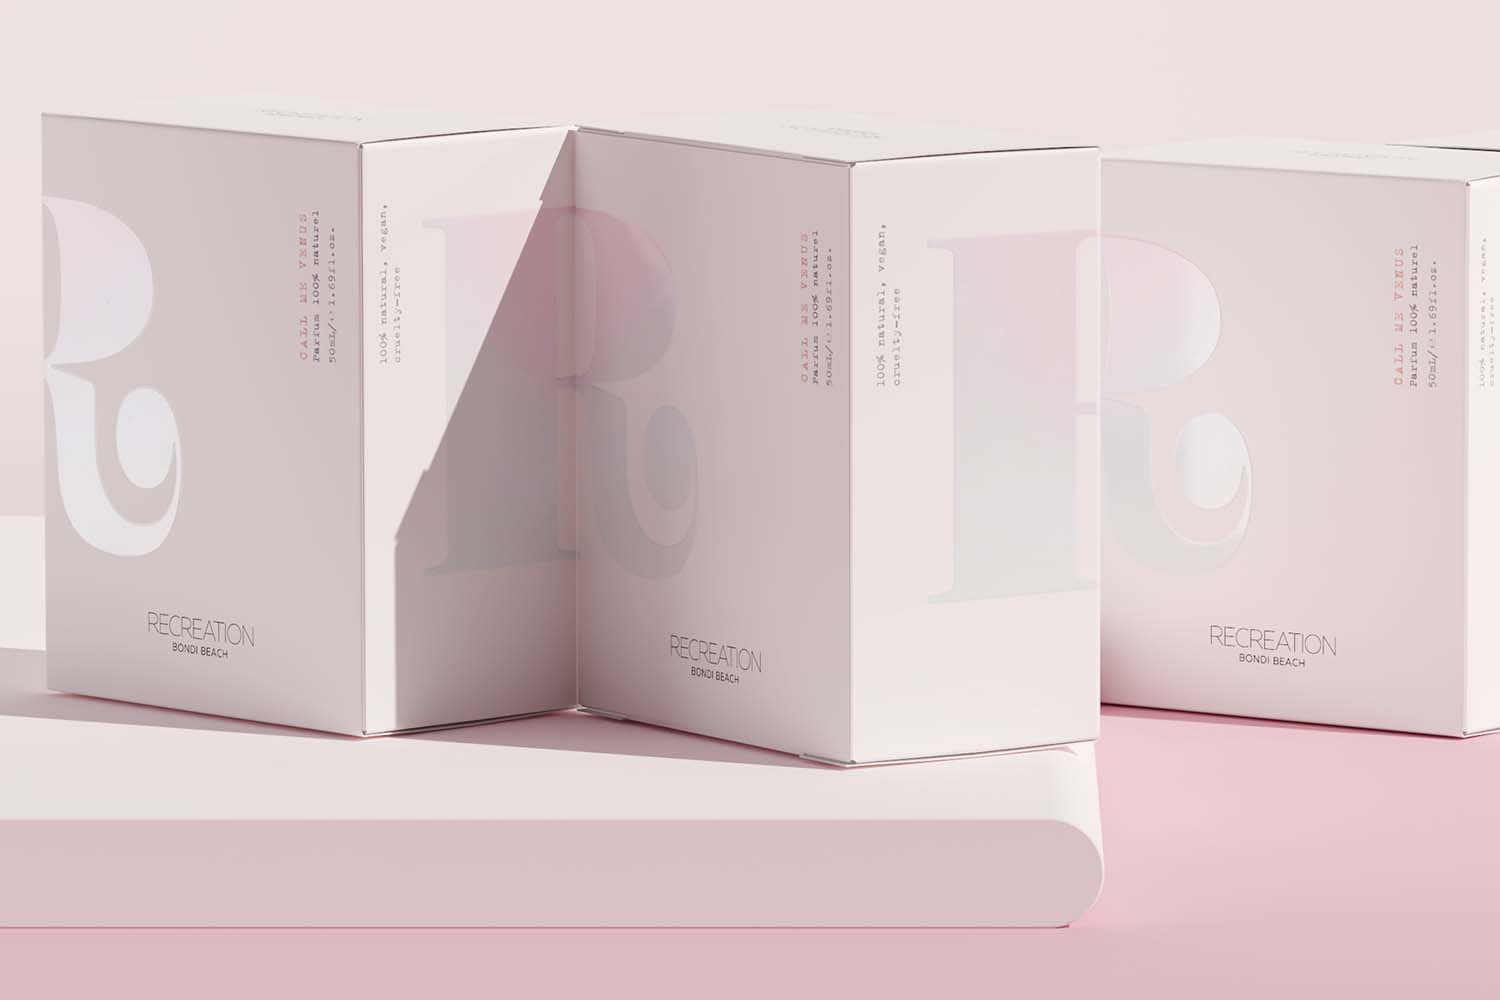 Recreation Bondi Beach Natural Fragrances by Angela Spindler is Winner in Packaging Design Category, 2018 - 2019.